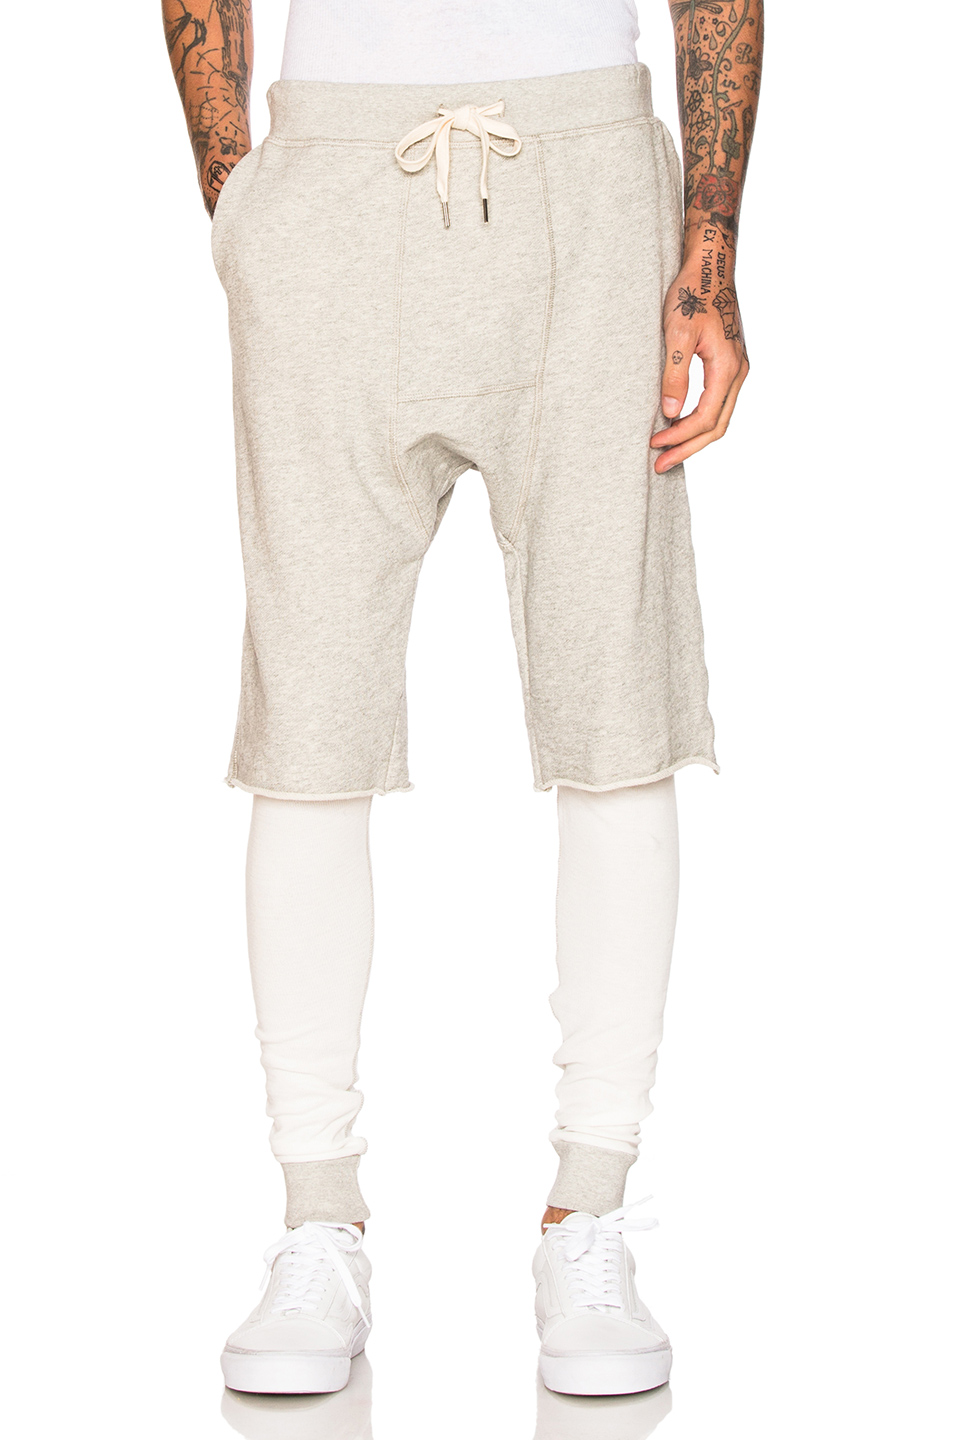 NSF Skye Pants in Gray